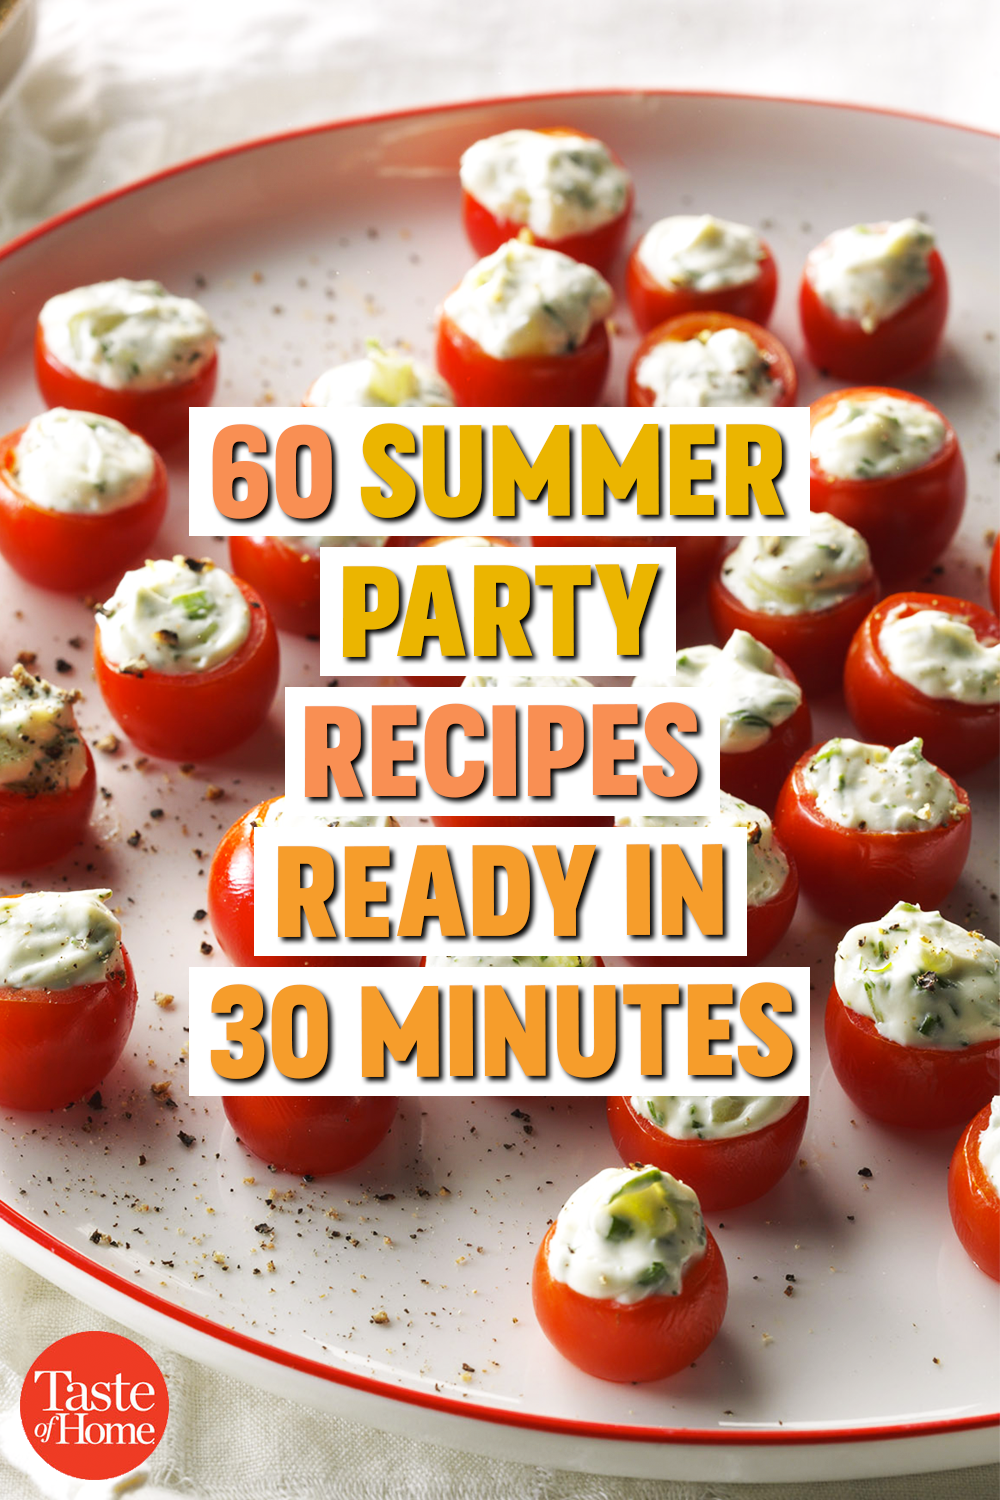 60 Summer Party Recipes Ready in 30 Minutes images